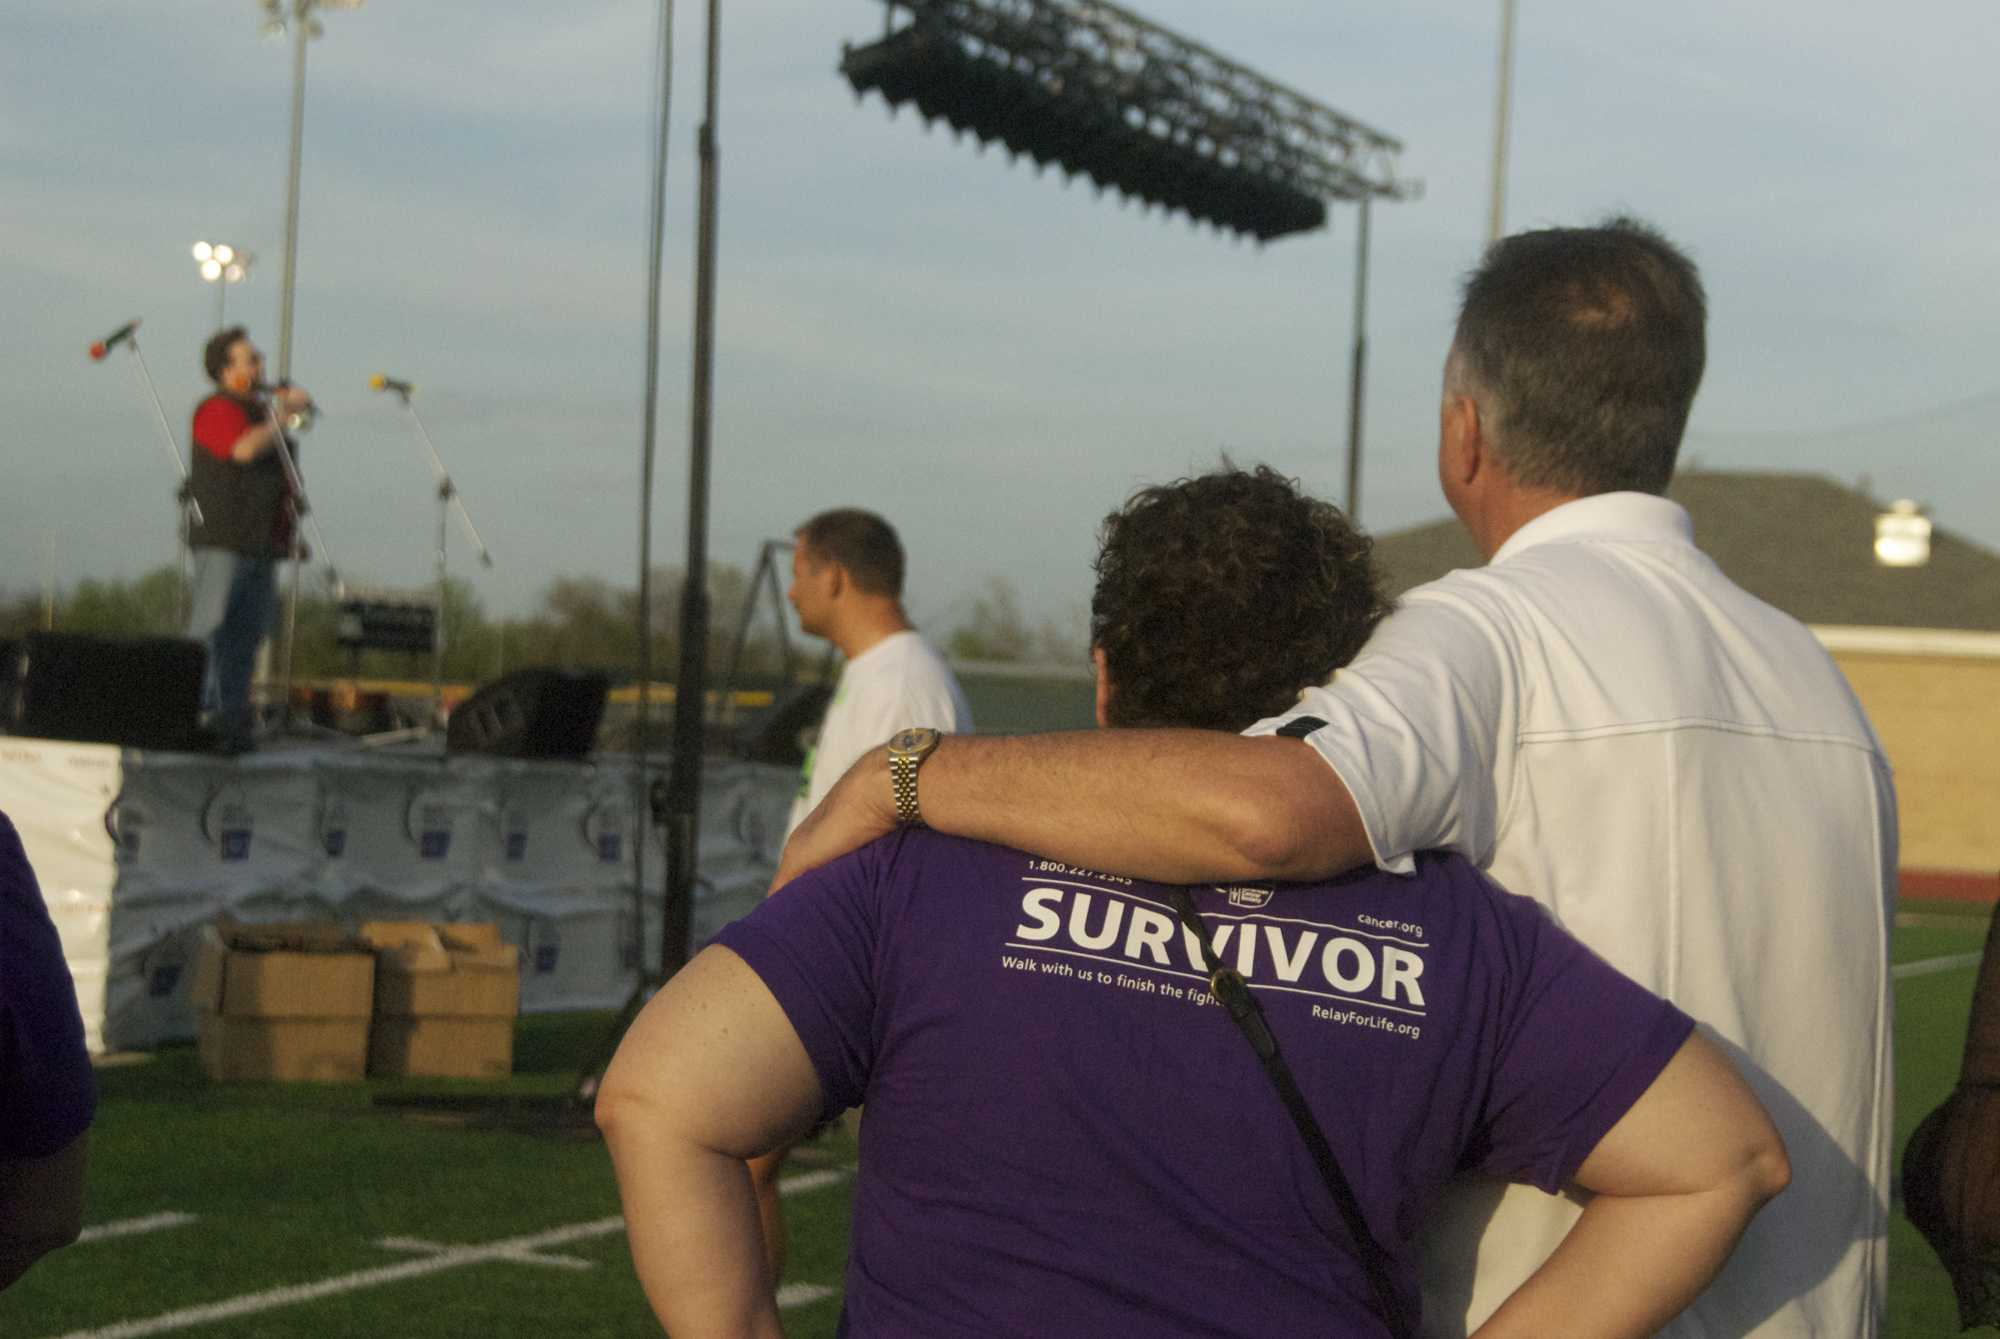 Relay For Life is a community event that rallies around cancer survivors and helps raise money for current patients.